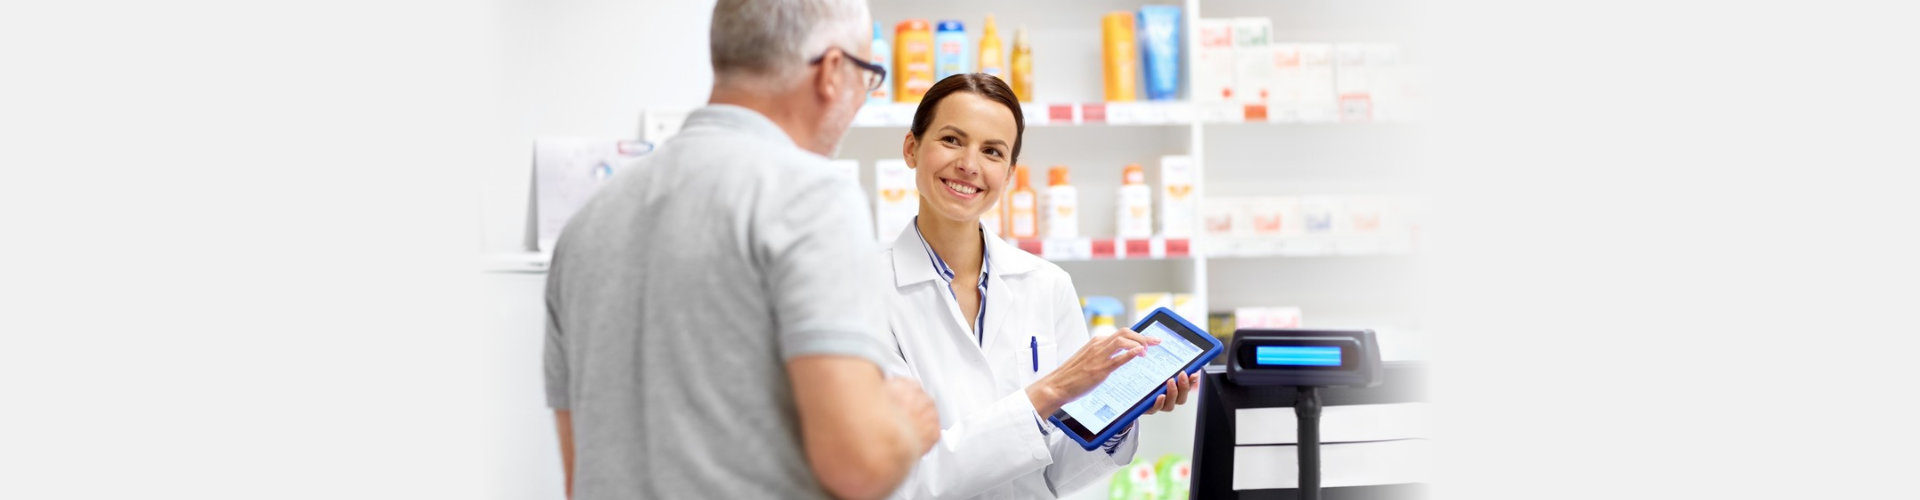 pharmacist holding a tablet